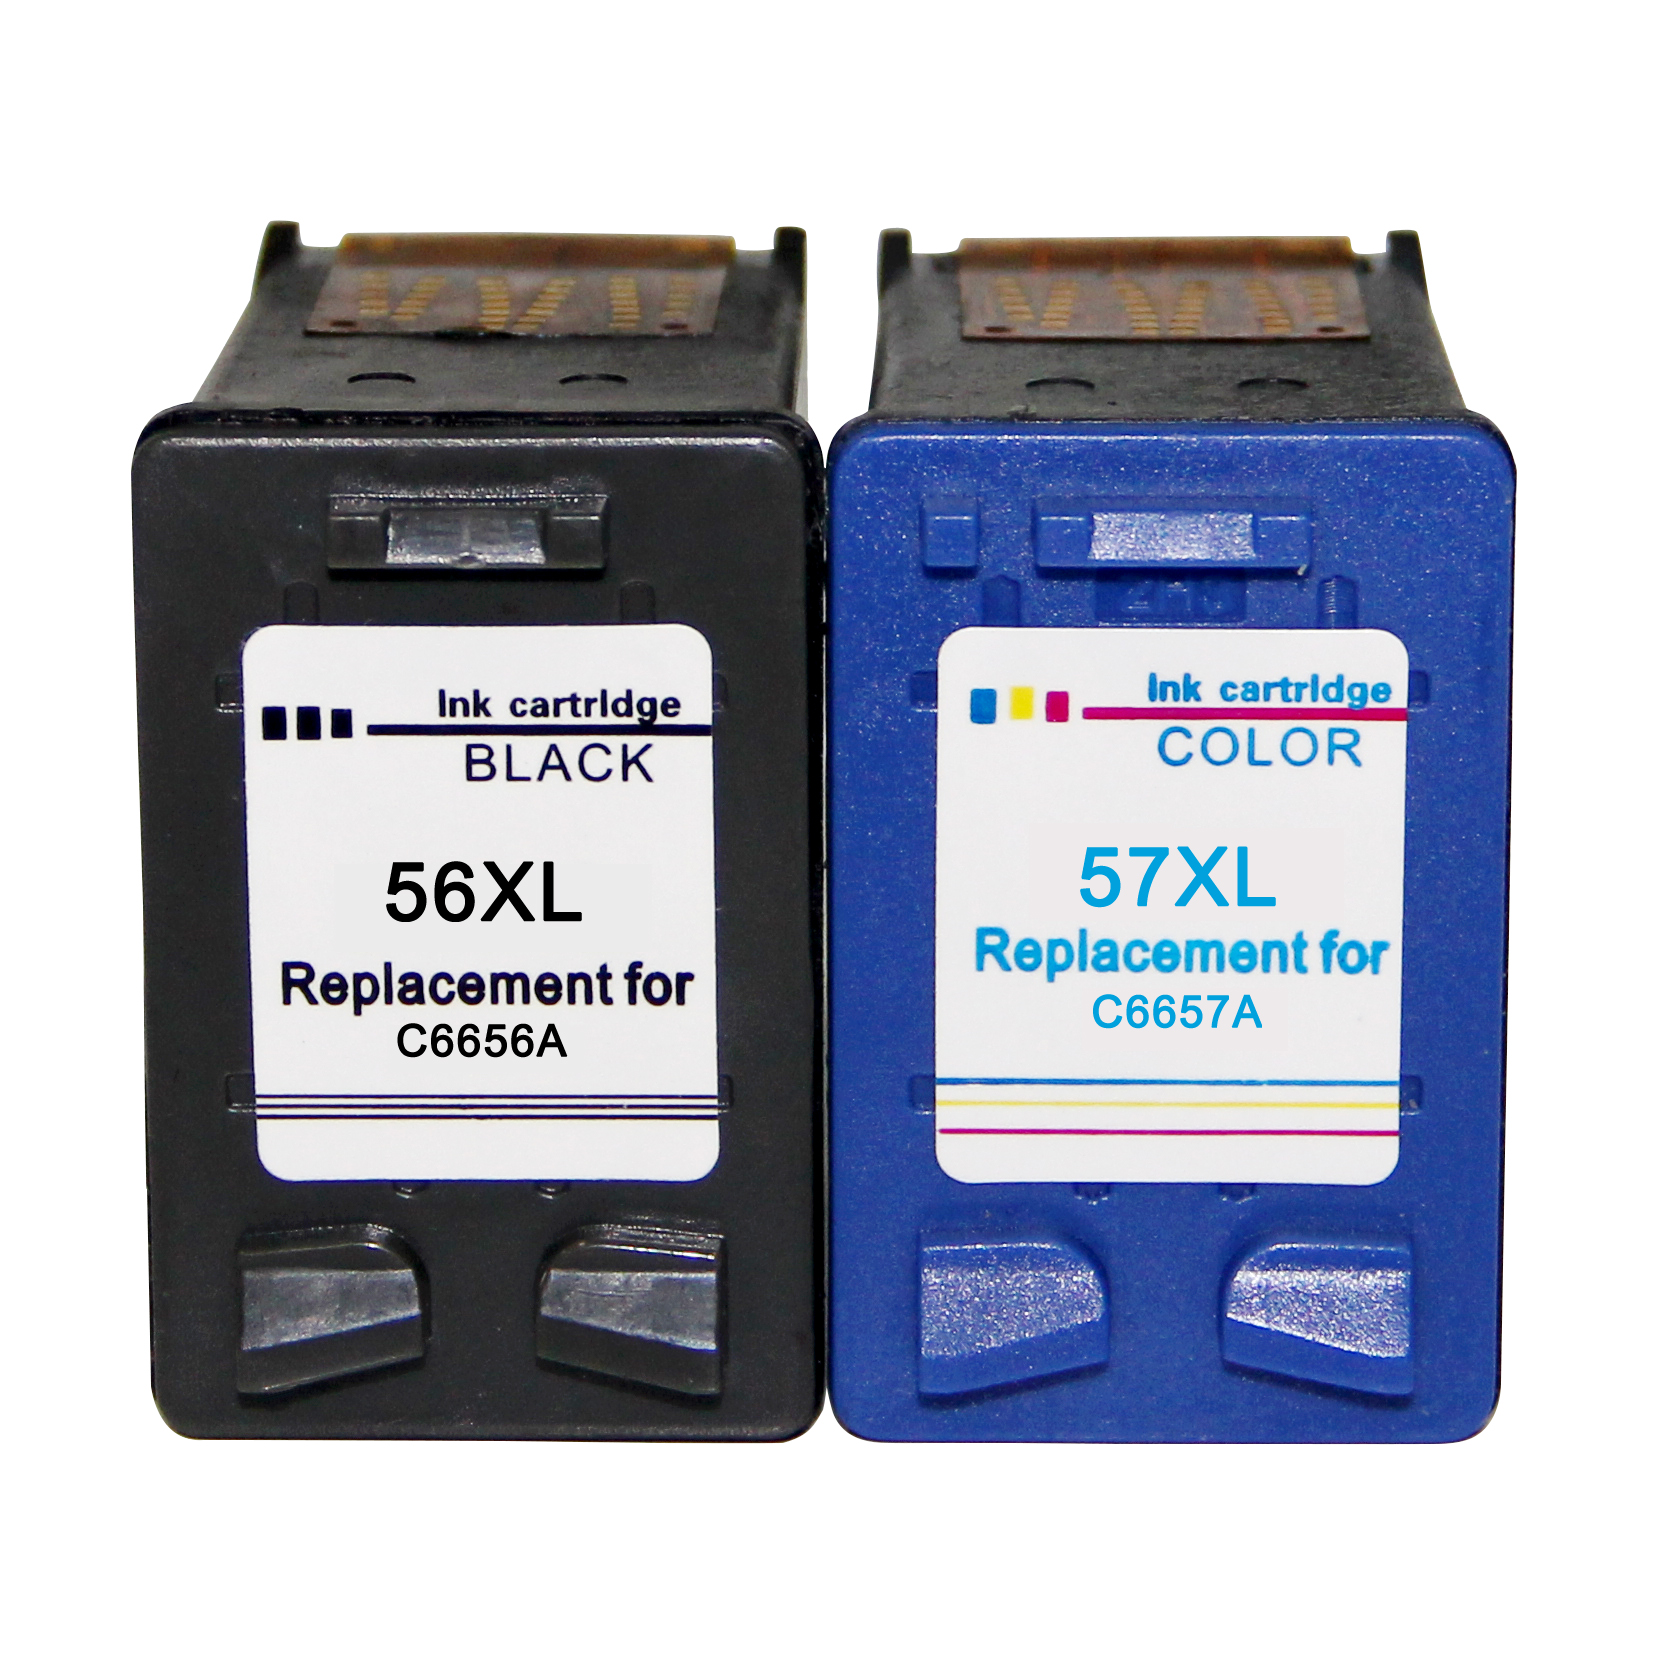 56 XL Black 57 XL Color Ink <font><b>Cartridge</b></font> Replacement for <font><b>HP</b></font> 56 57 HP56 HP57 Deskjet 2100 220 450 5510 <font><b>5550</b></font> 5552 7150 7350 image